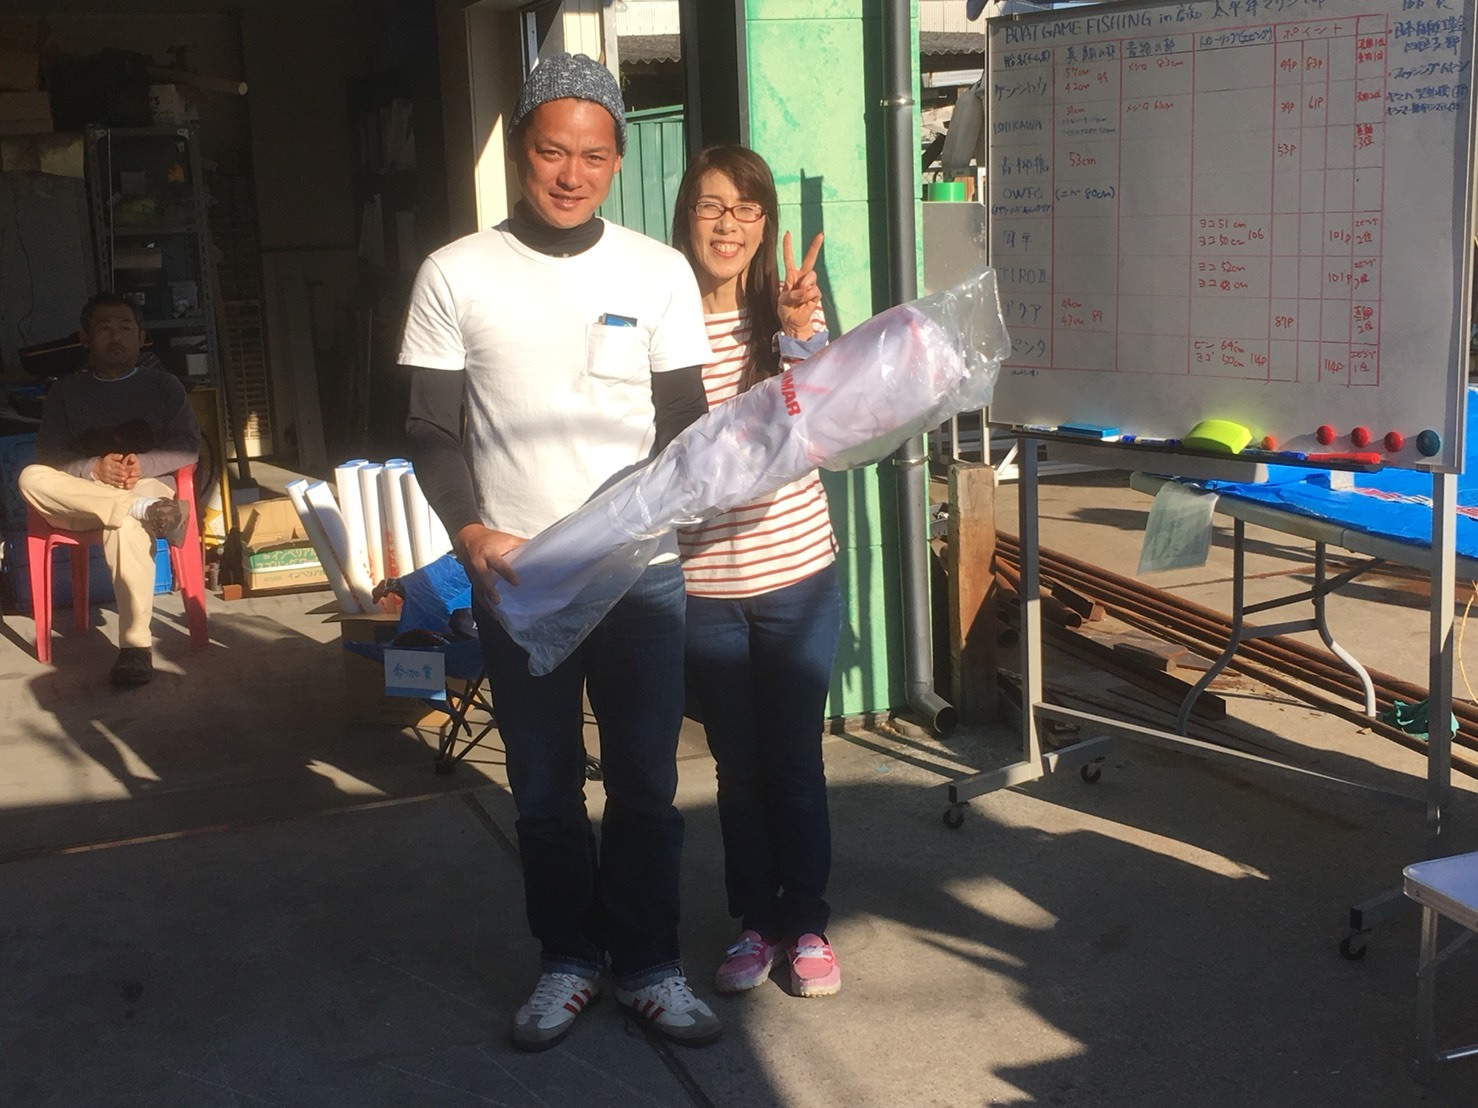 BOAY GAME FISHING in 高知 太平洋マリンcup 2018 レポート!_a0132631_18432637.jpg